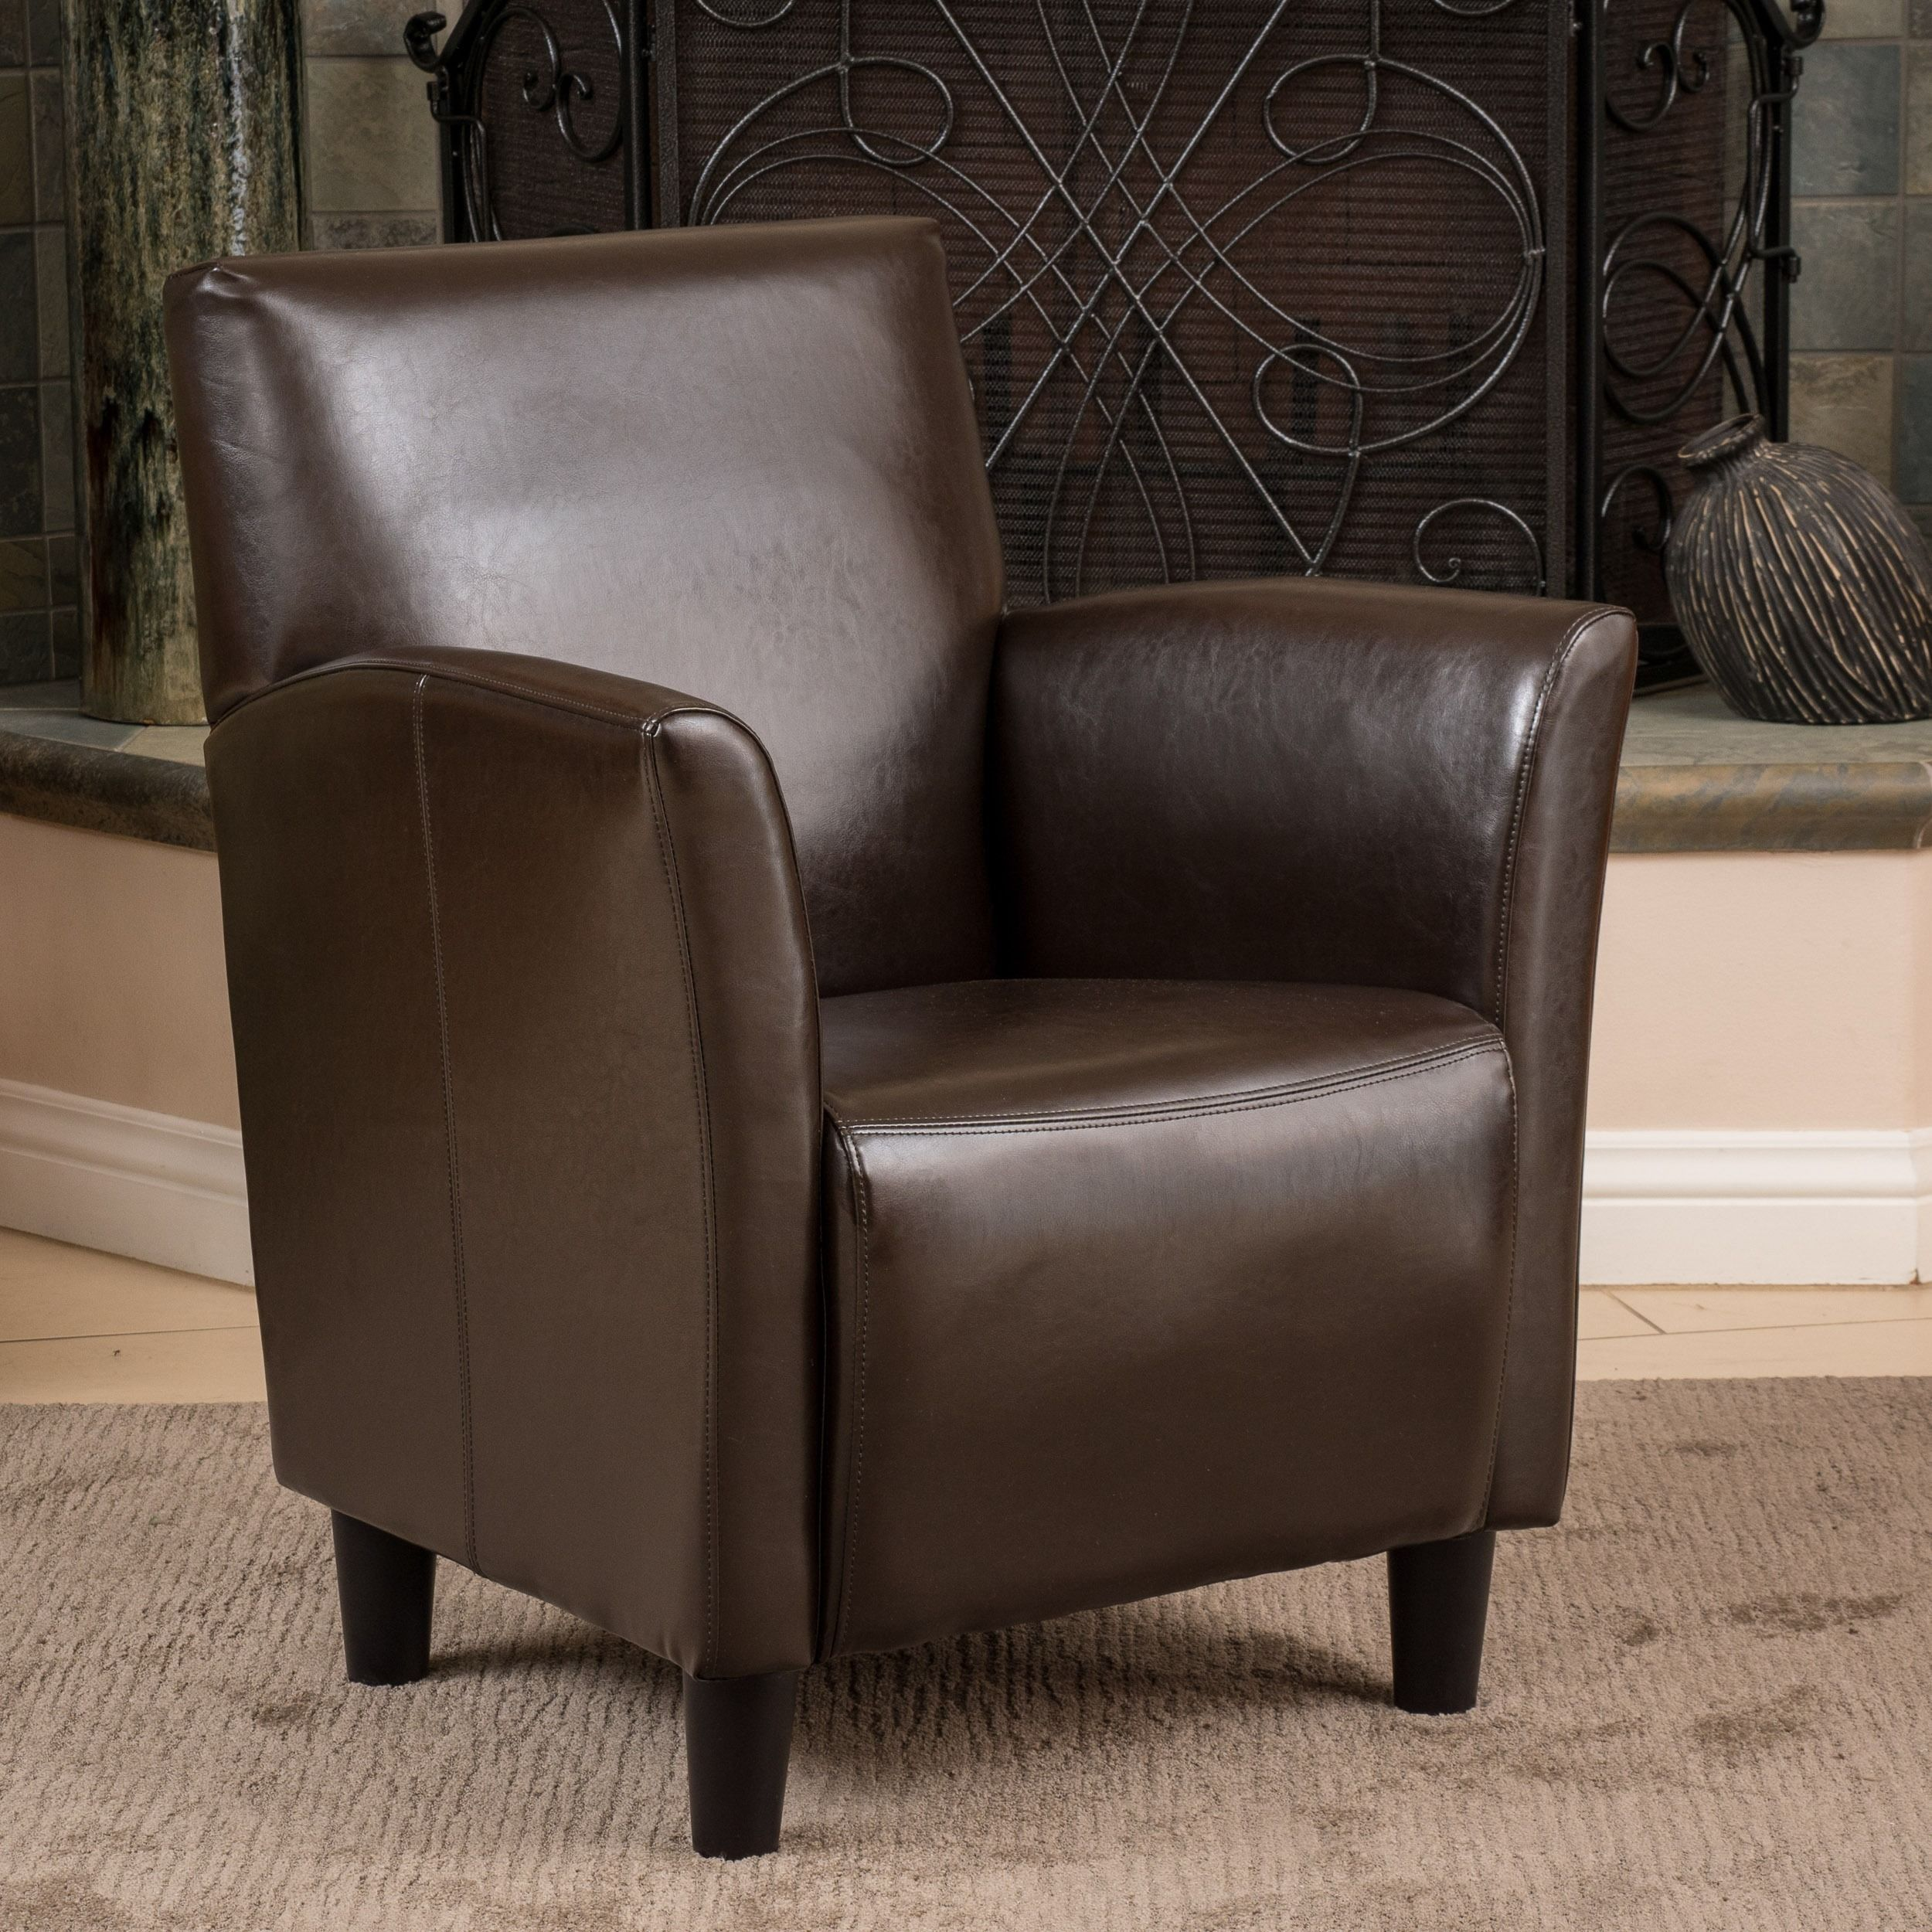 Add style to your home with this sophisticated bonded leather club chair from Francisco. This chair features beautiful brown leather upholstery and dark-finish legs. It is constructed of solid wood for added stability and durability.